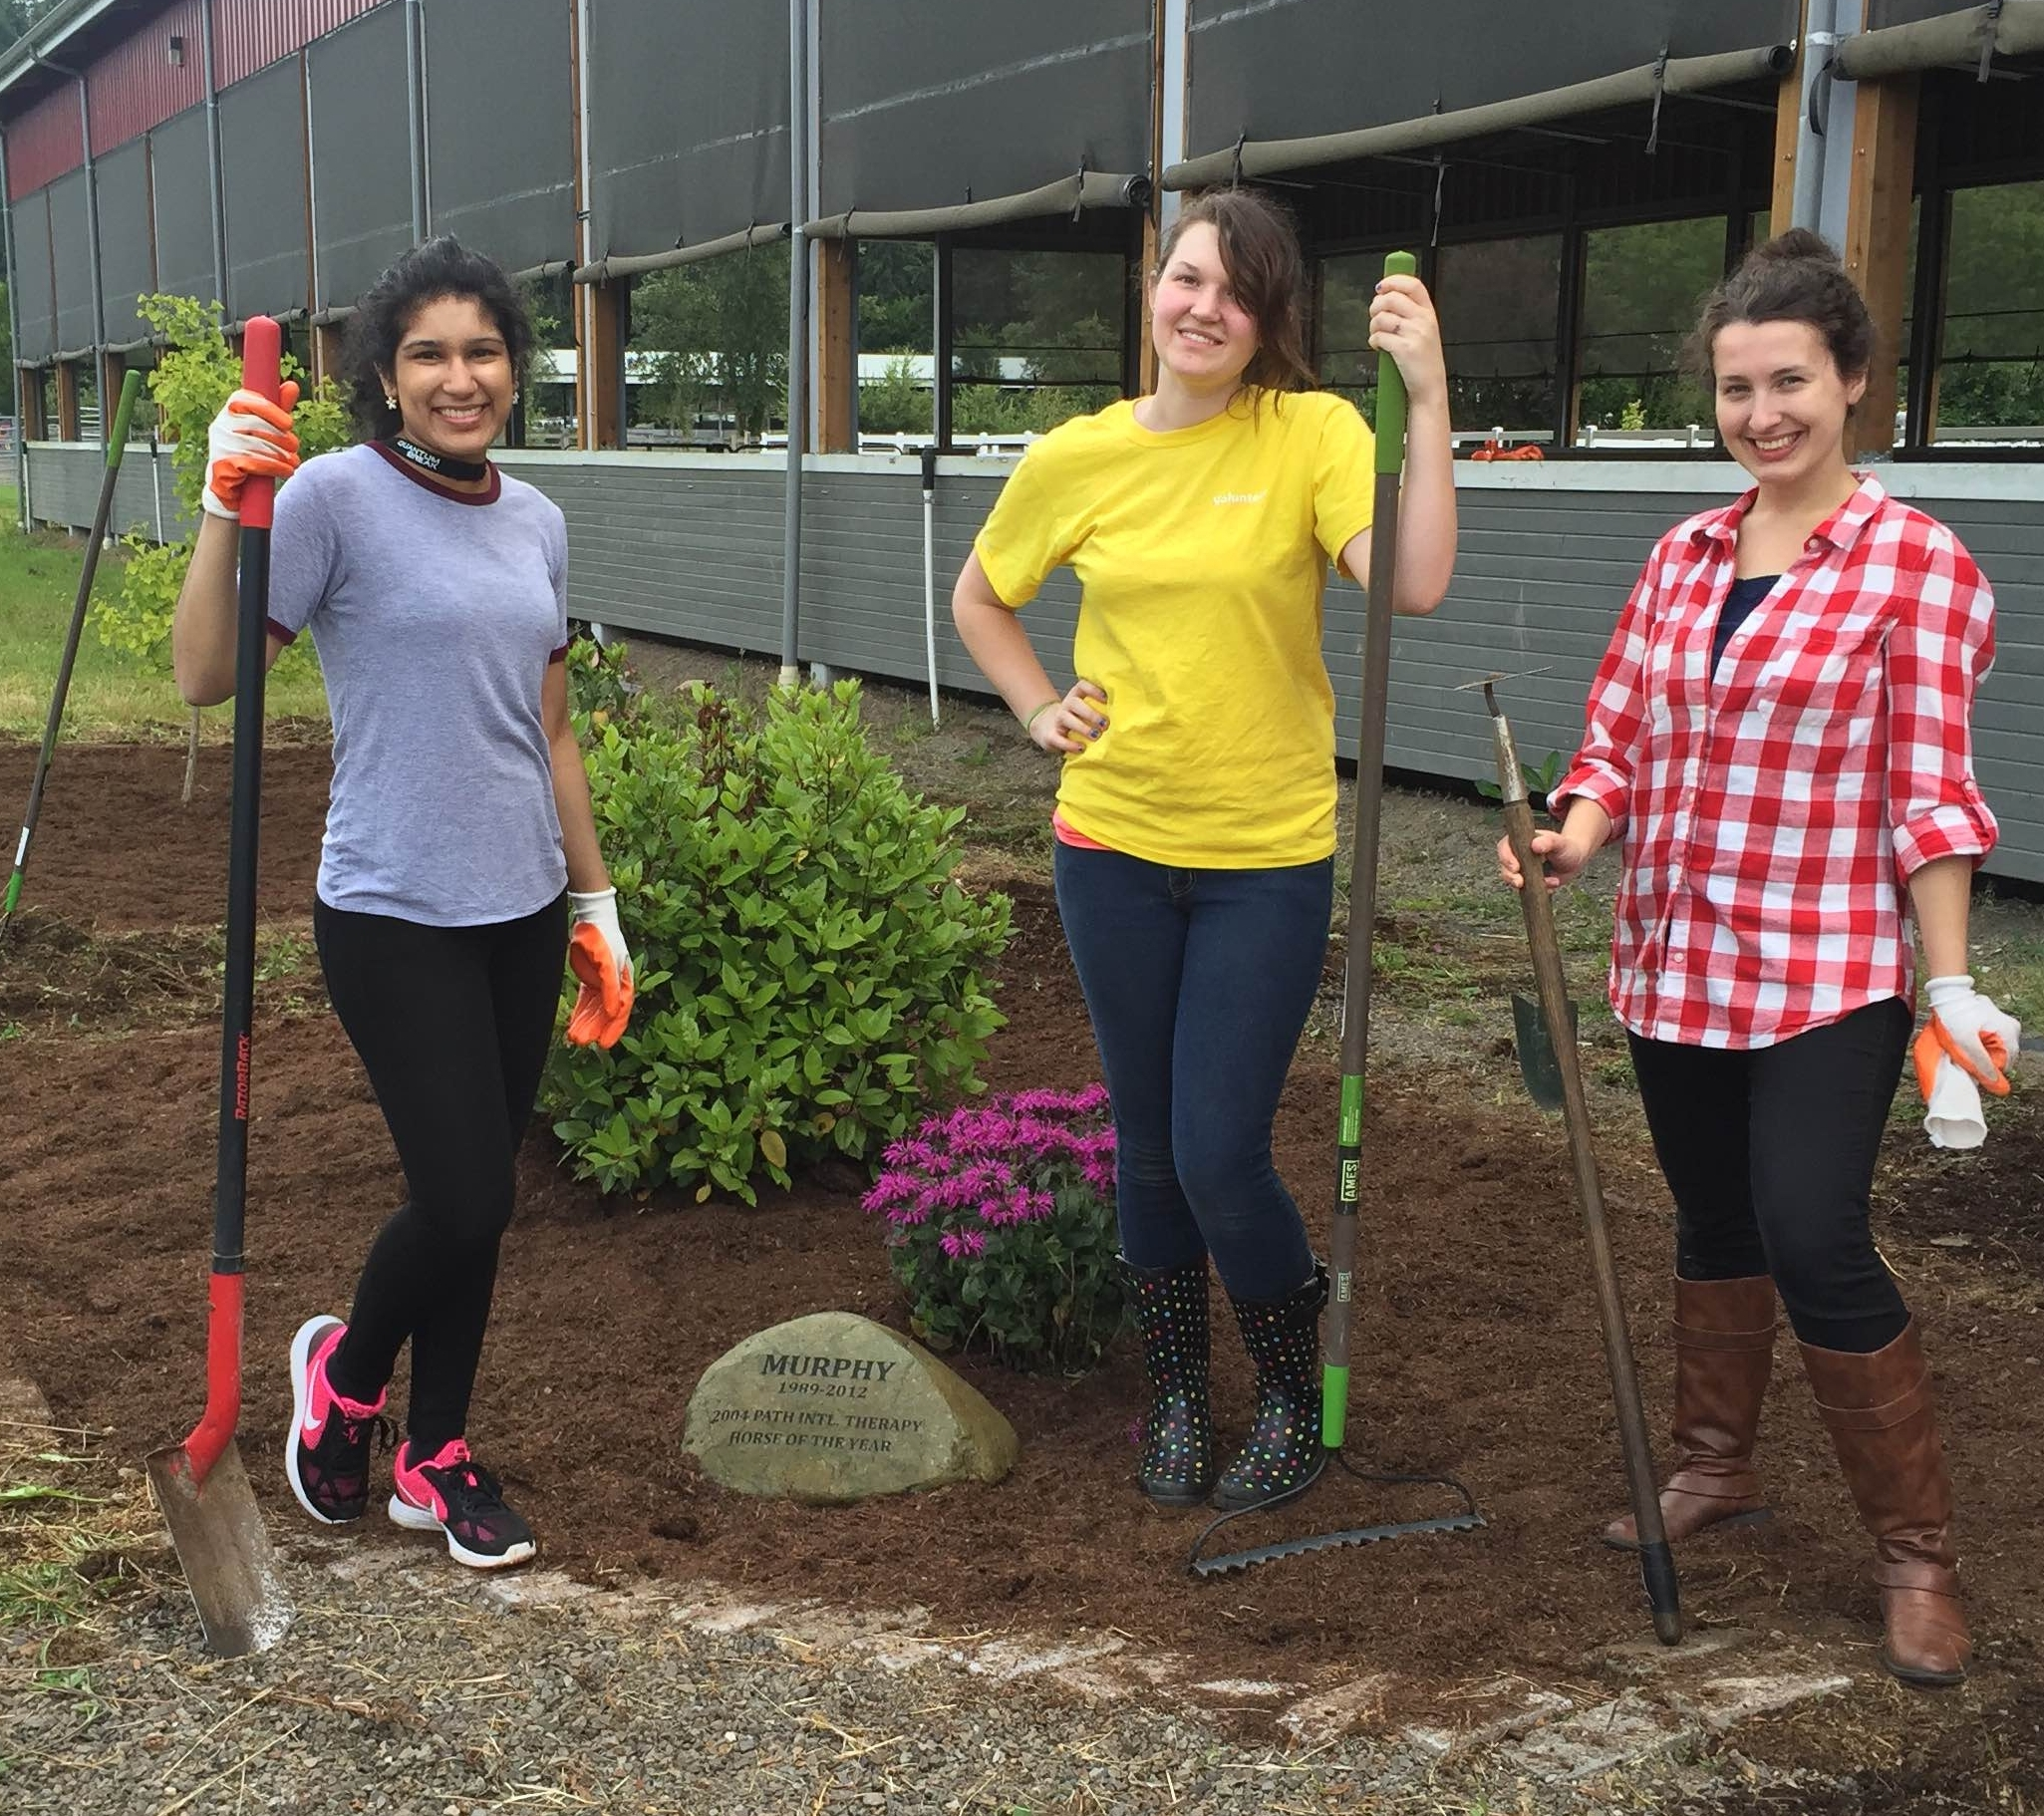 Three women holding shovels and rakes, standing in front of the Little Bit memorial garden.